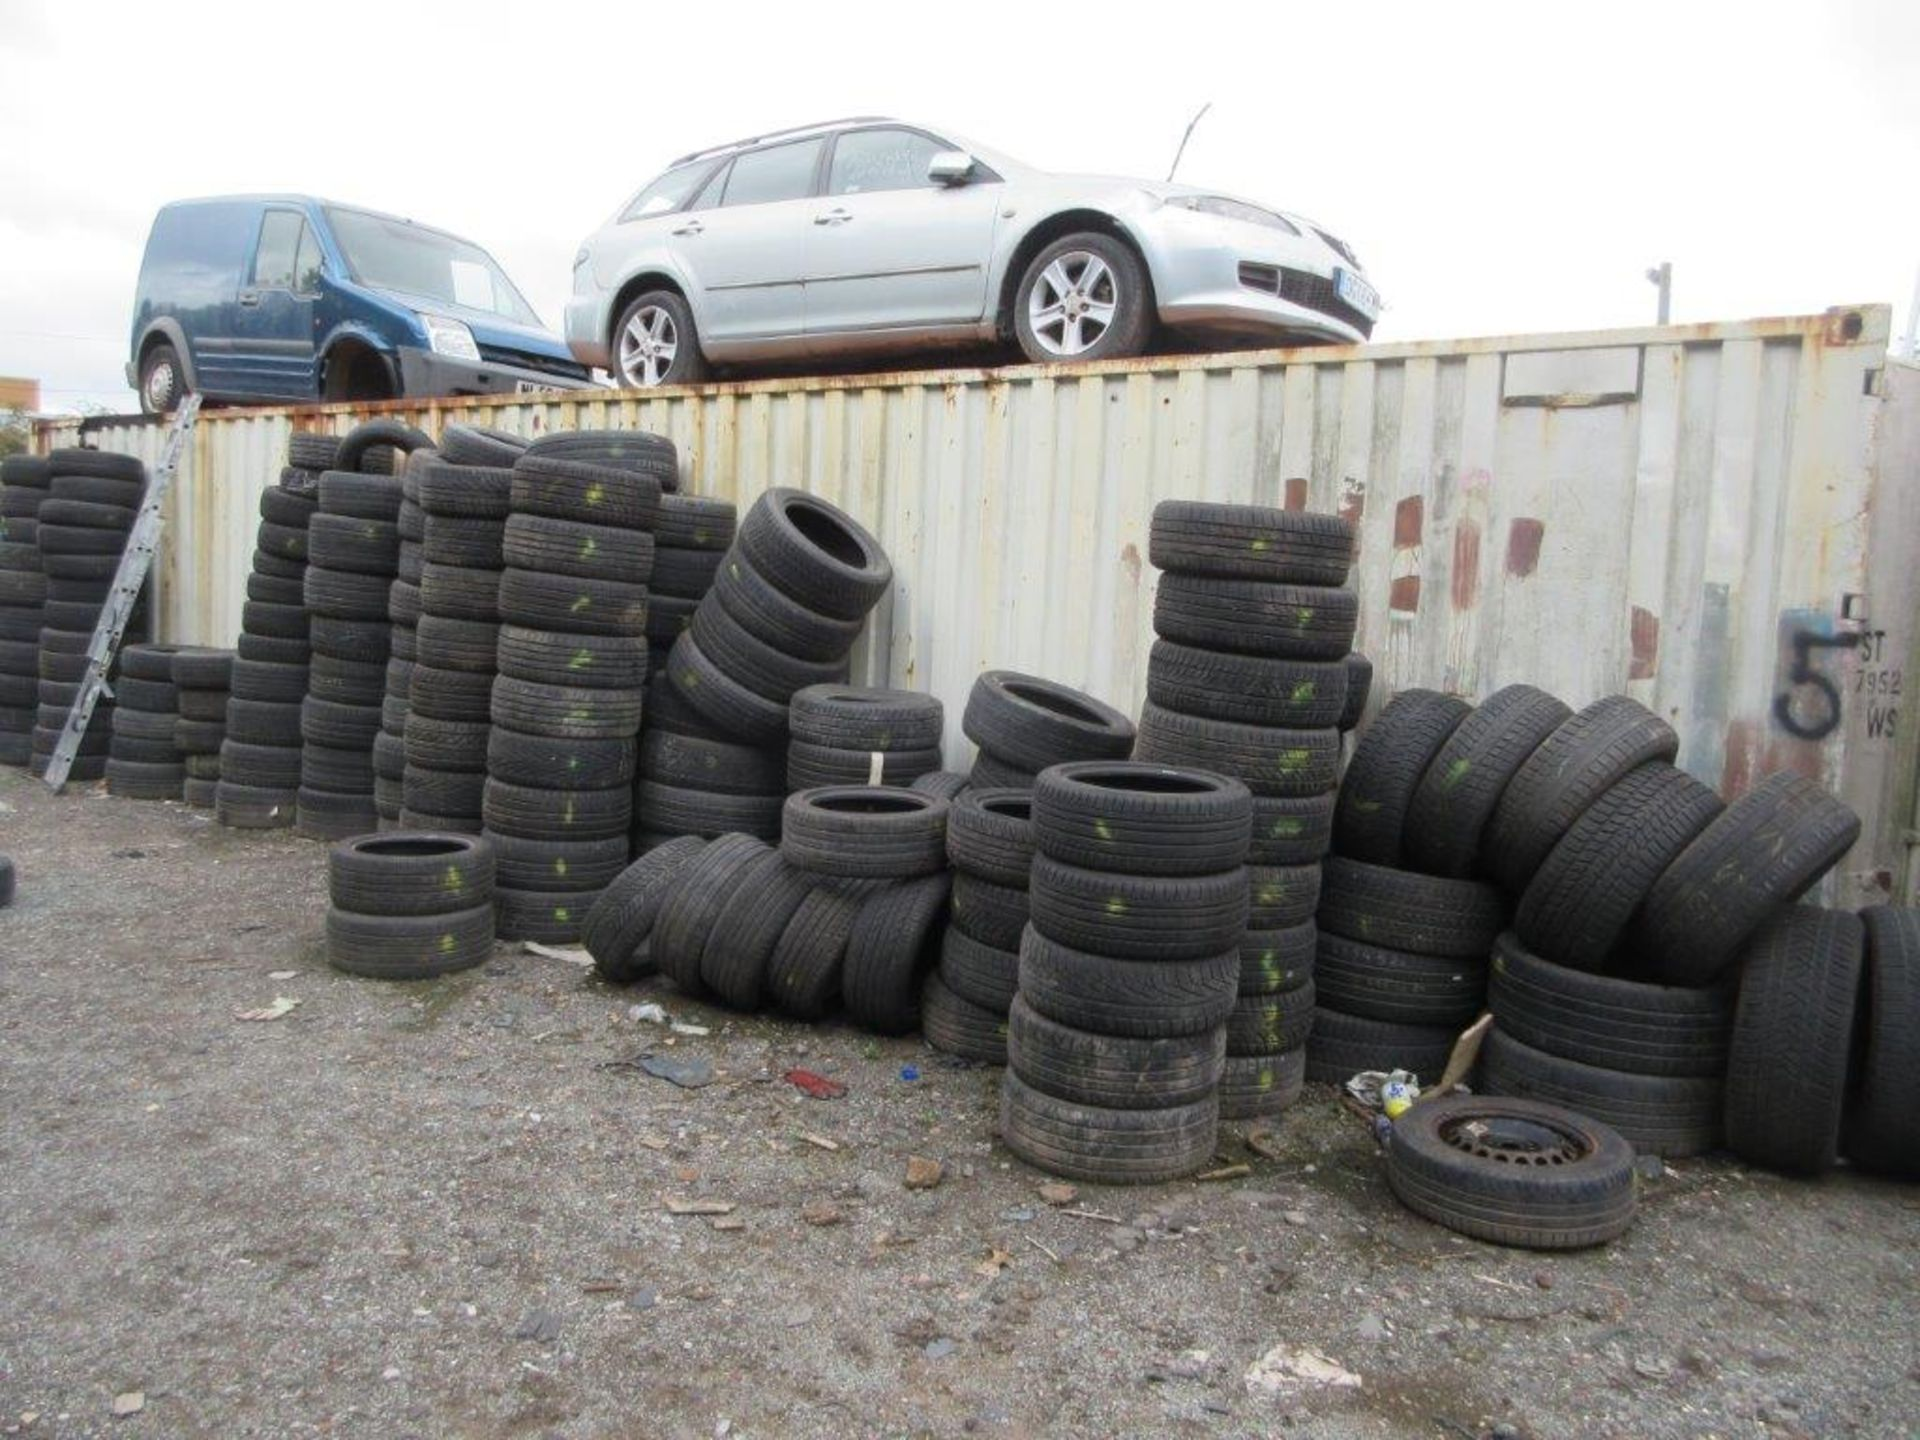 Lot 5 - White steel shipping container, 40 ft. x 8 ft. approx. (Tyres included with Lot 1). *NB: A work